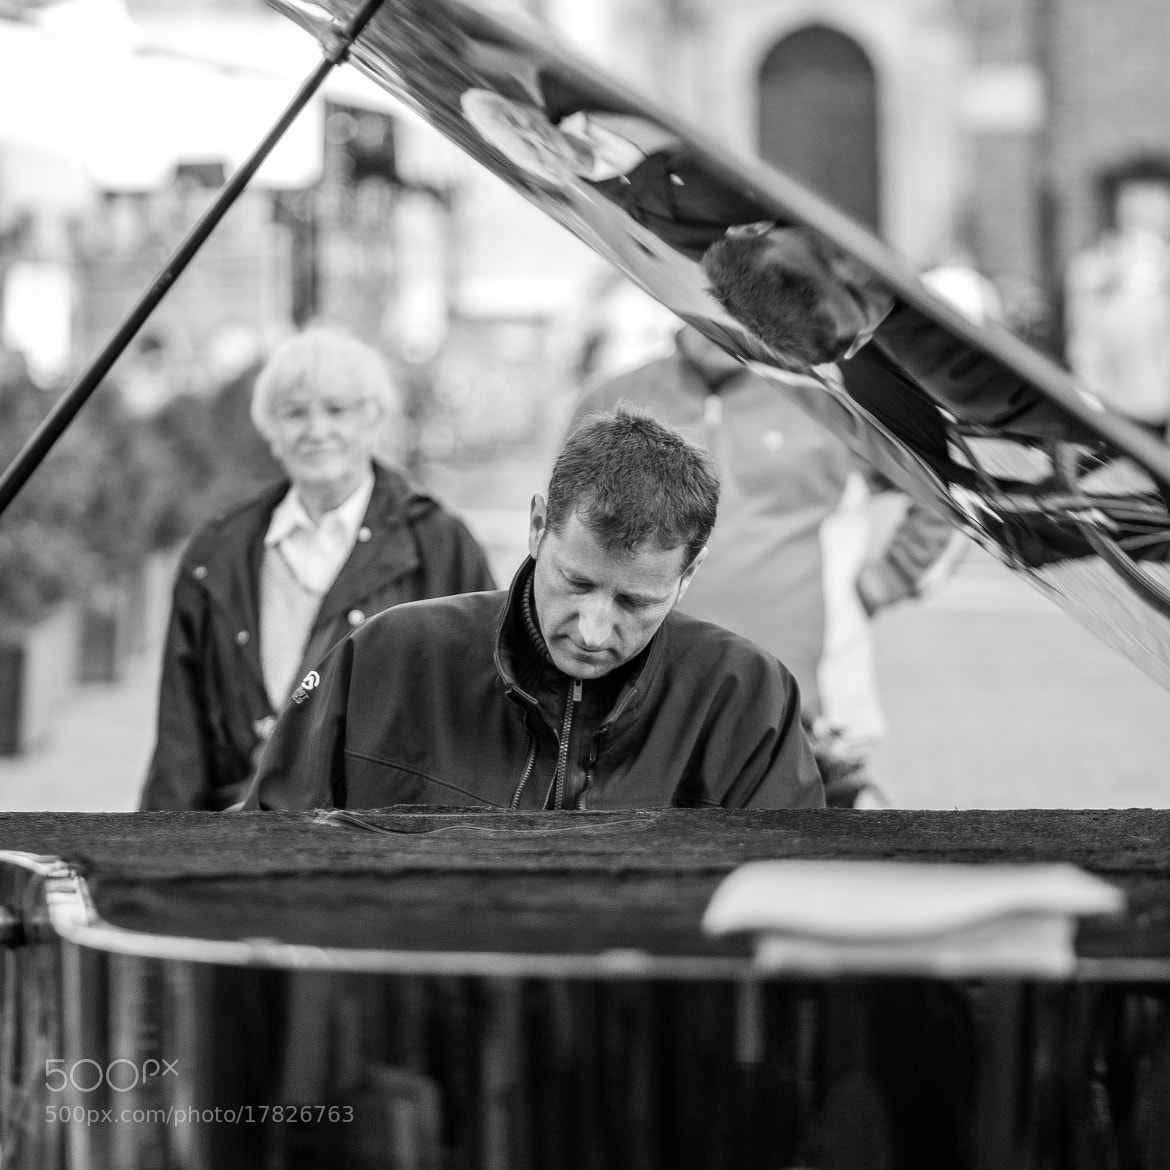 Photograph A pianist at work by Jakub Ostrowski on 500px